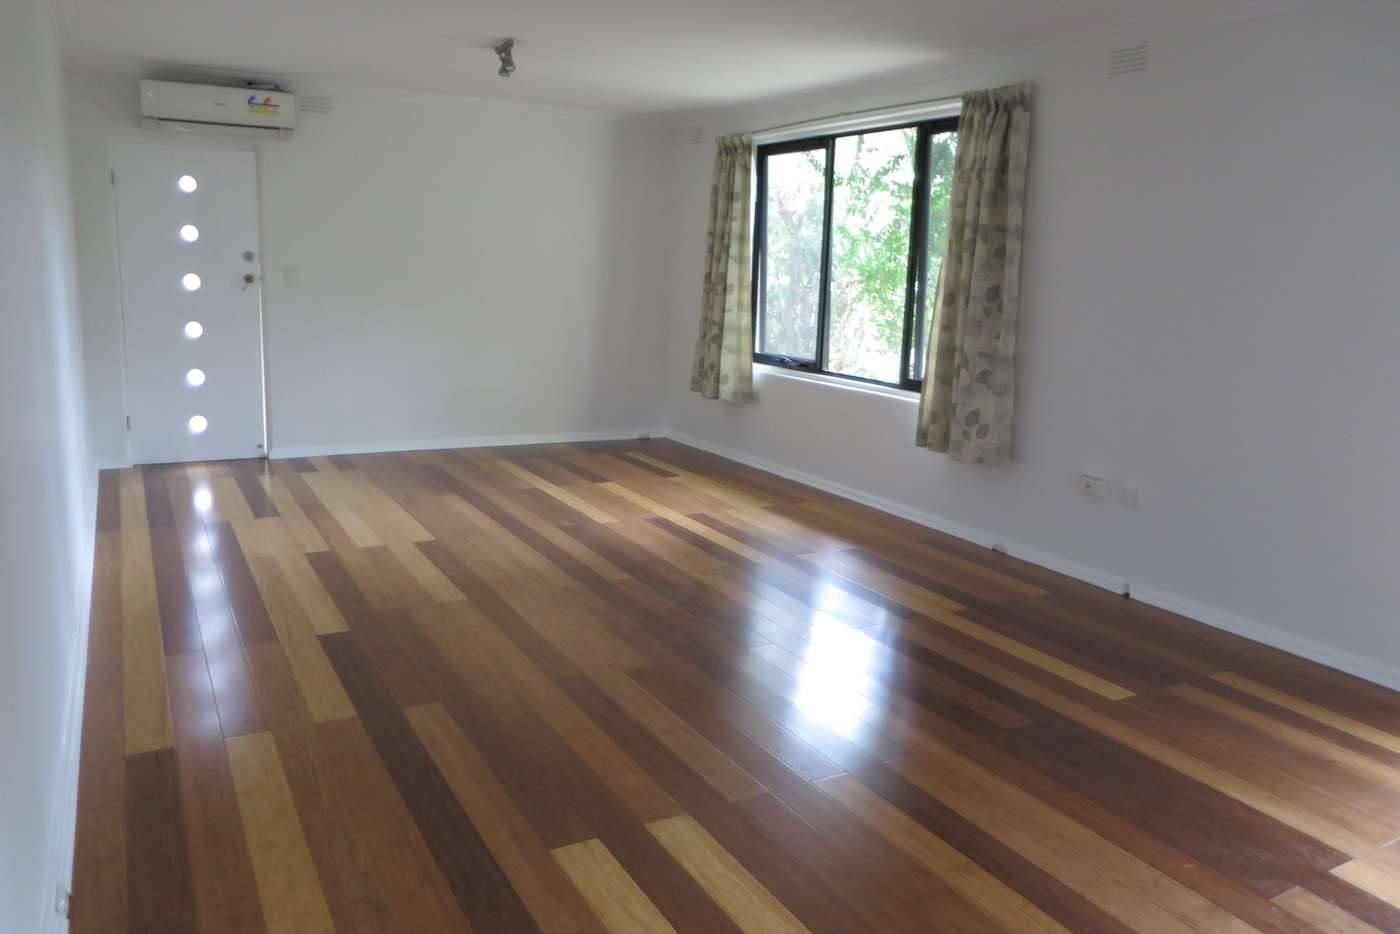 Main view of Homely apartment listing, 1/5 Peak Street, Malvern East VIC 3145